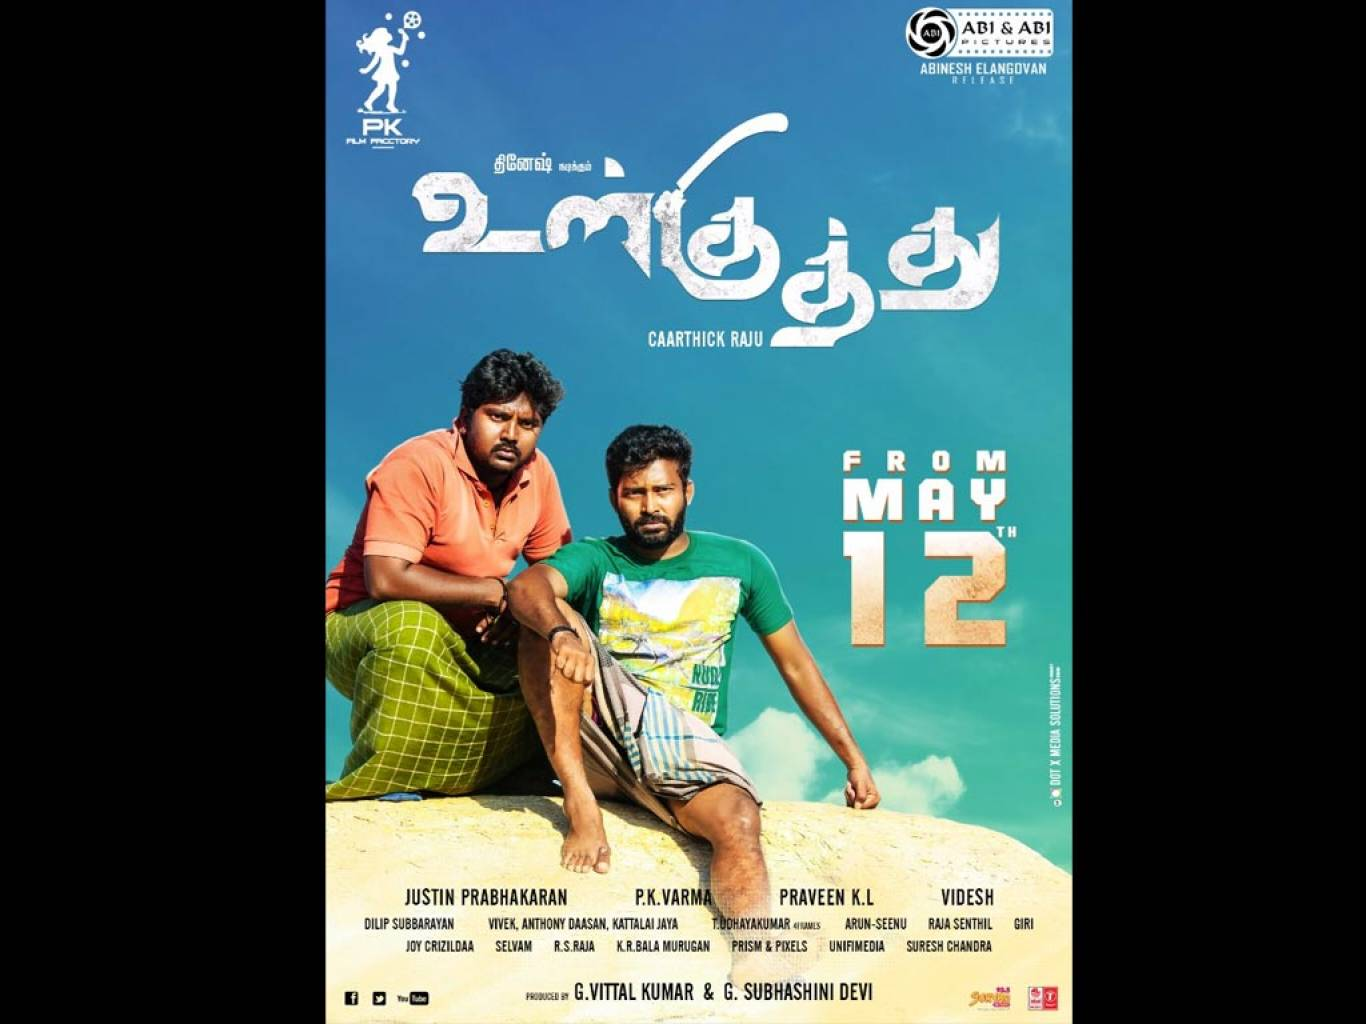 Ulkuthu Wallpapers